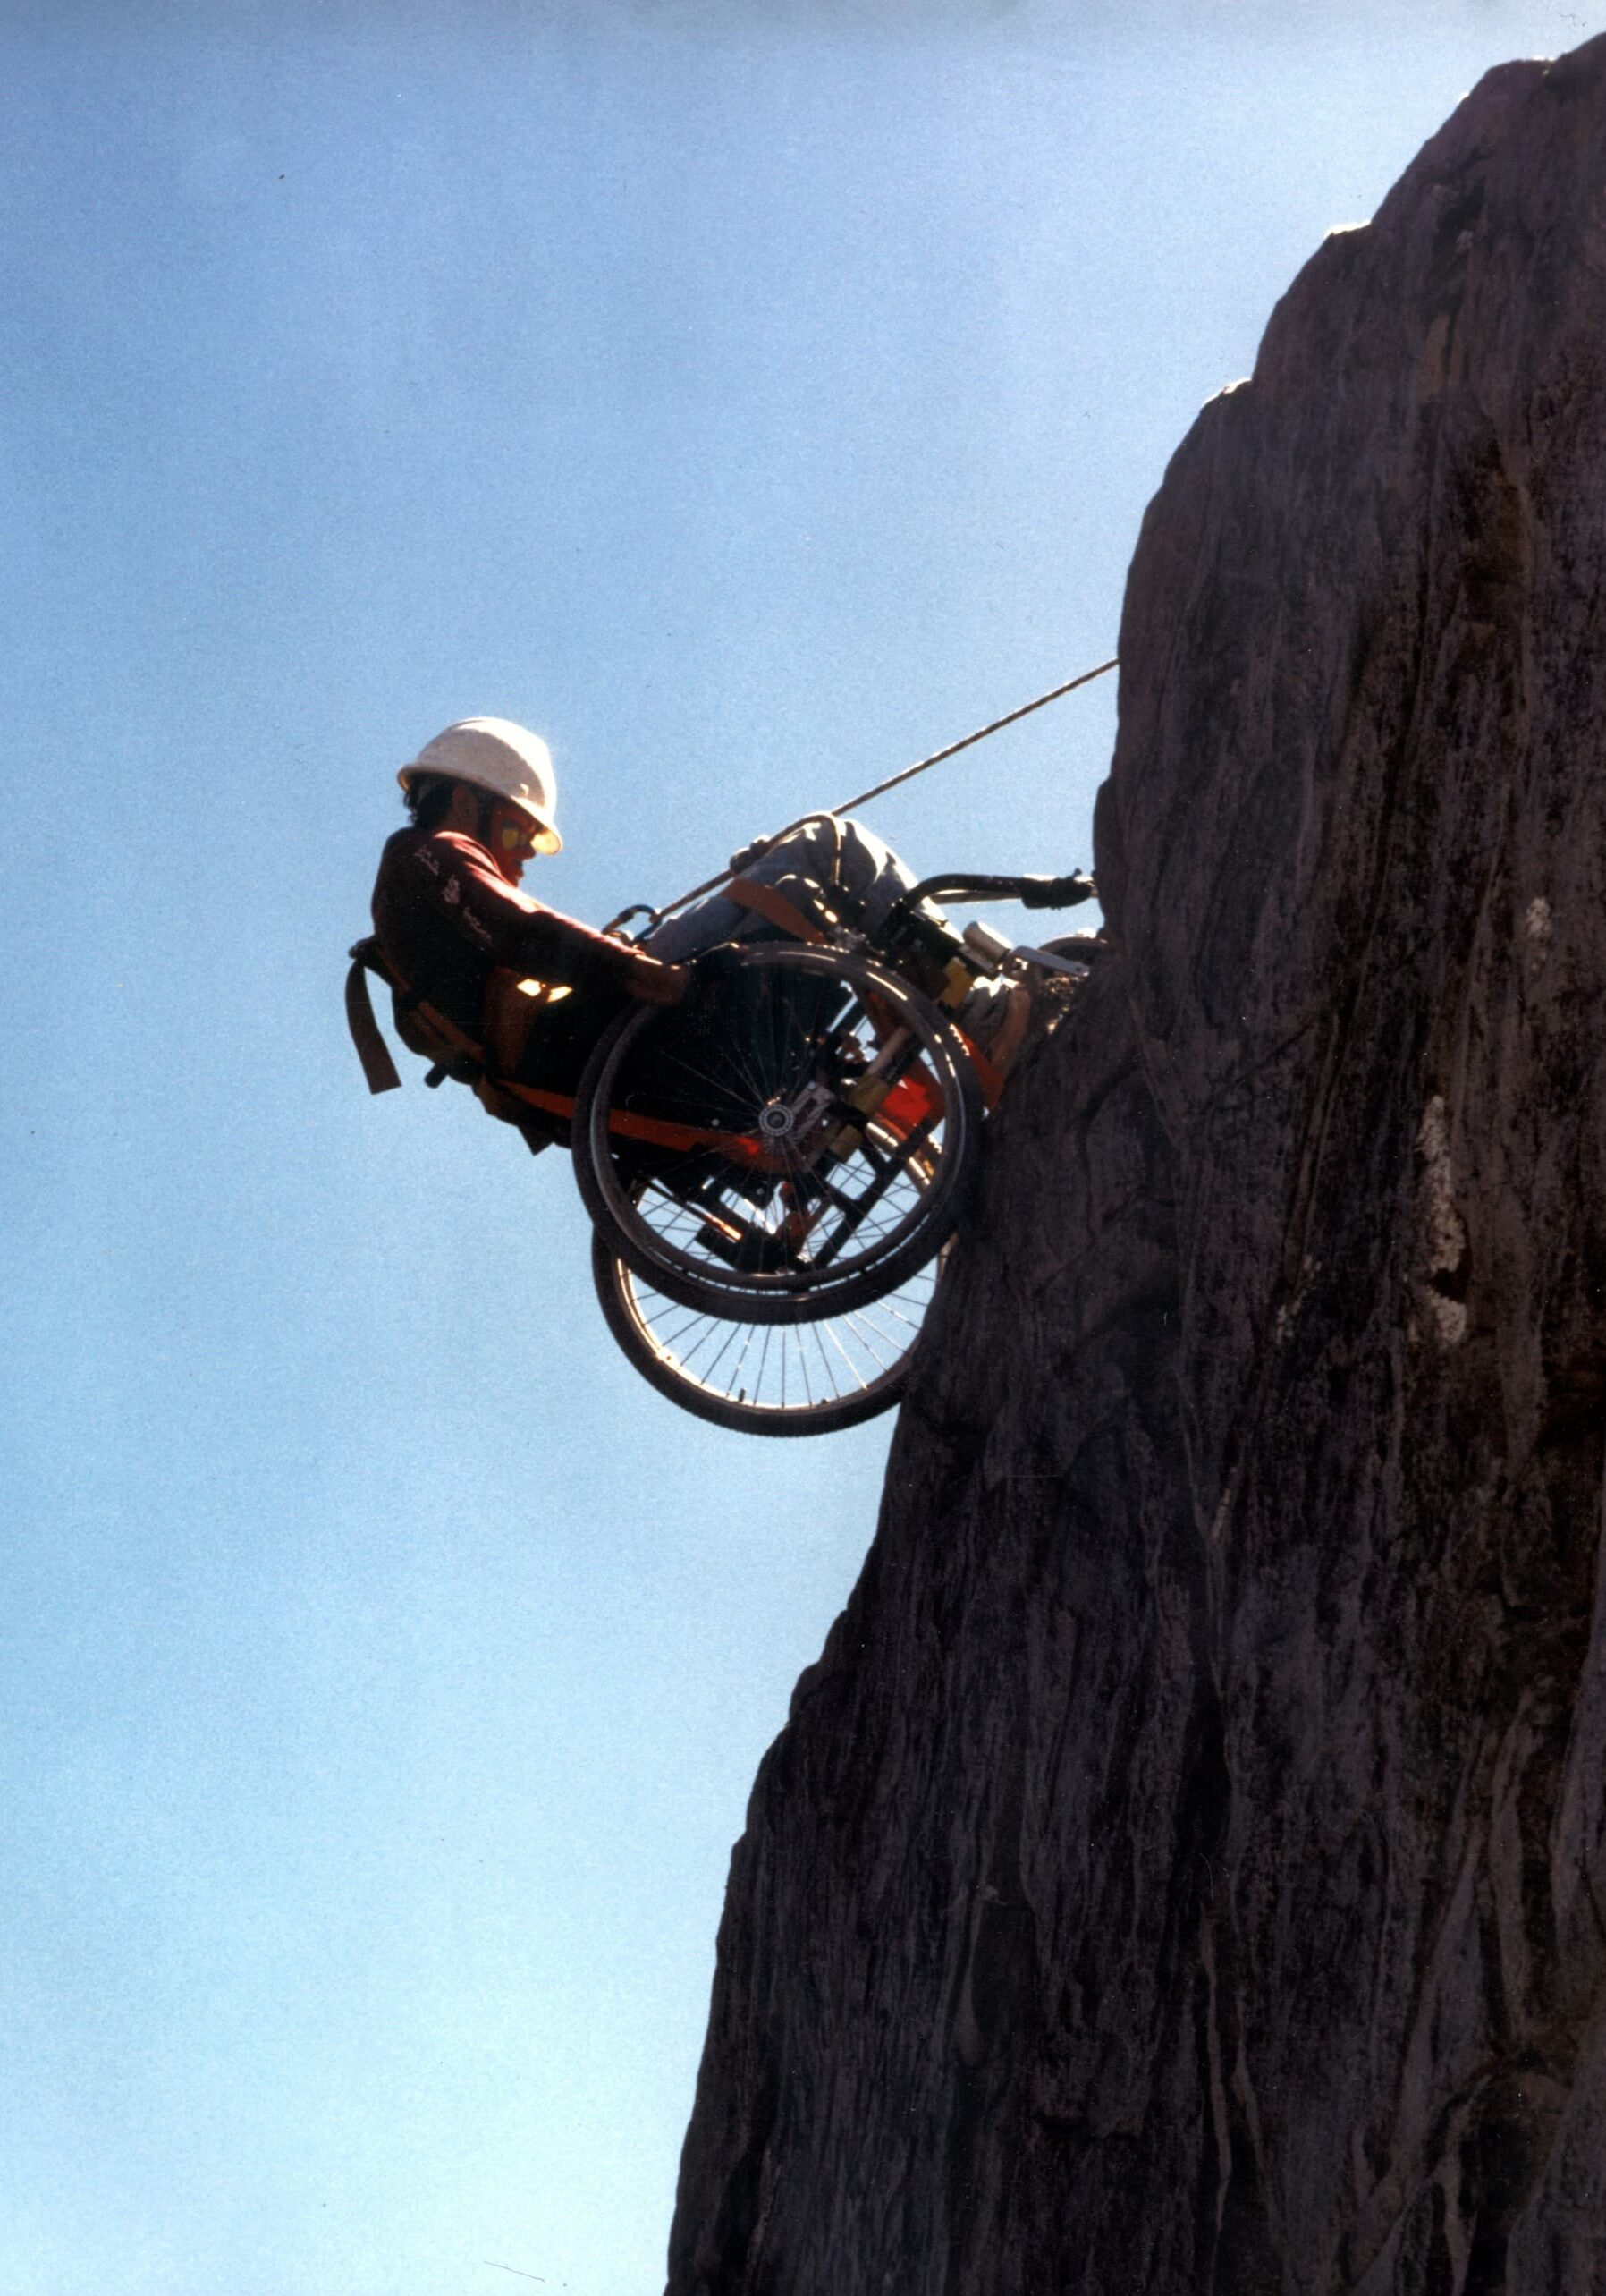 """dangling wheelchair Erin Broadbent. The trip included a day of rappelling down a sheer rock face along the river. Erin's eyes lit up with excitement. Greg Lais describes the scene, """"I was standing in the river at the base of the cliff, watching these two wheelchair rims edge their way over the cliff. Erin was cool as a cucumber, started rolling her way down the sheer cliff face when I took the picture. A moment later, her wheel caught in a crack of rock and she flipped sideways. I looked up at her and asked if she was nervous. She responded, 'Nah, I already broke my neck once, this is no big deal.'"""" Peering at Erin over the cliff, the crowd above burst into applause as Erin freed herself and made her way down the cliff. After Erin, everyone in the group enthusiastically rappelled down the cliff."""